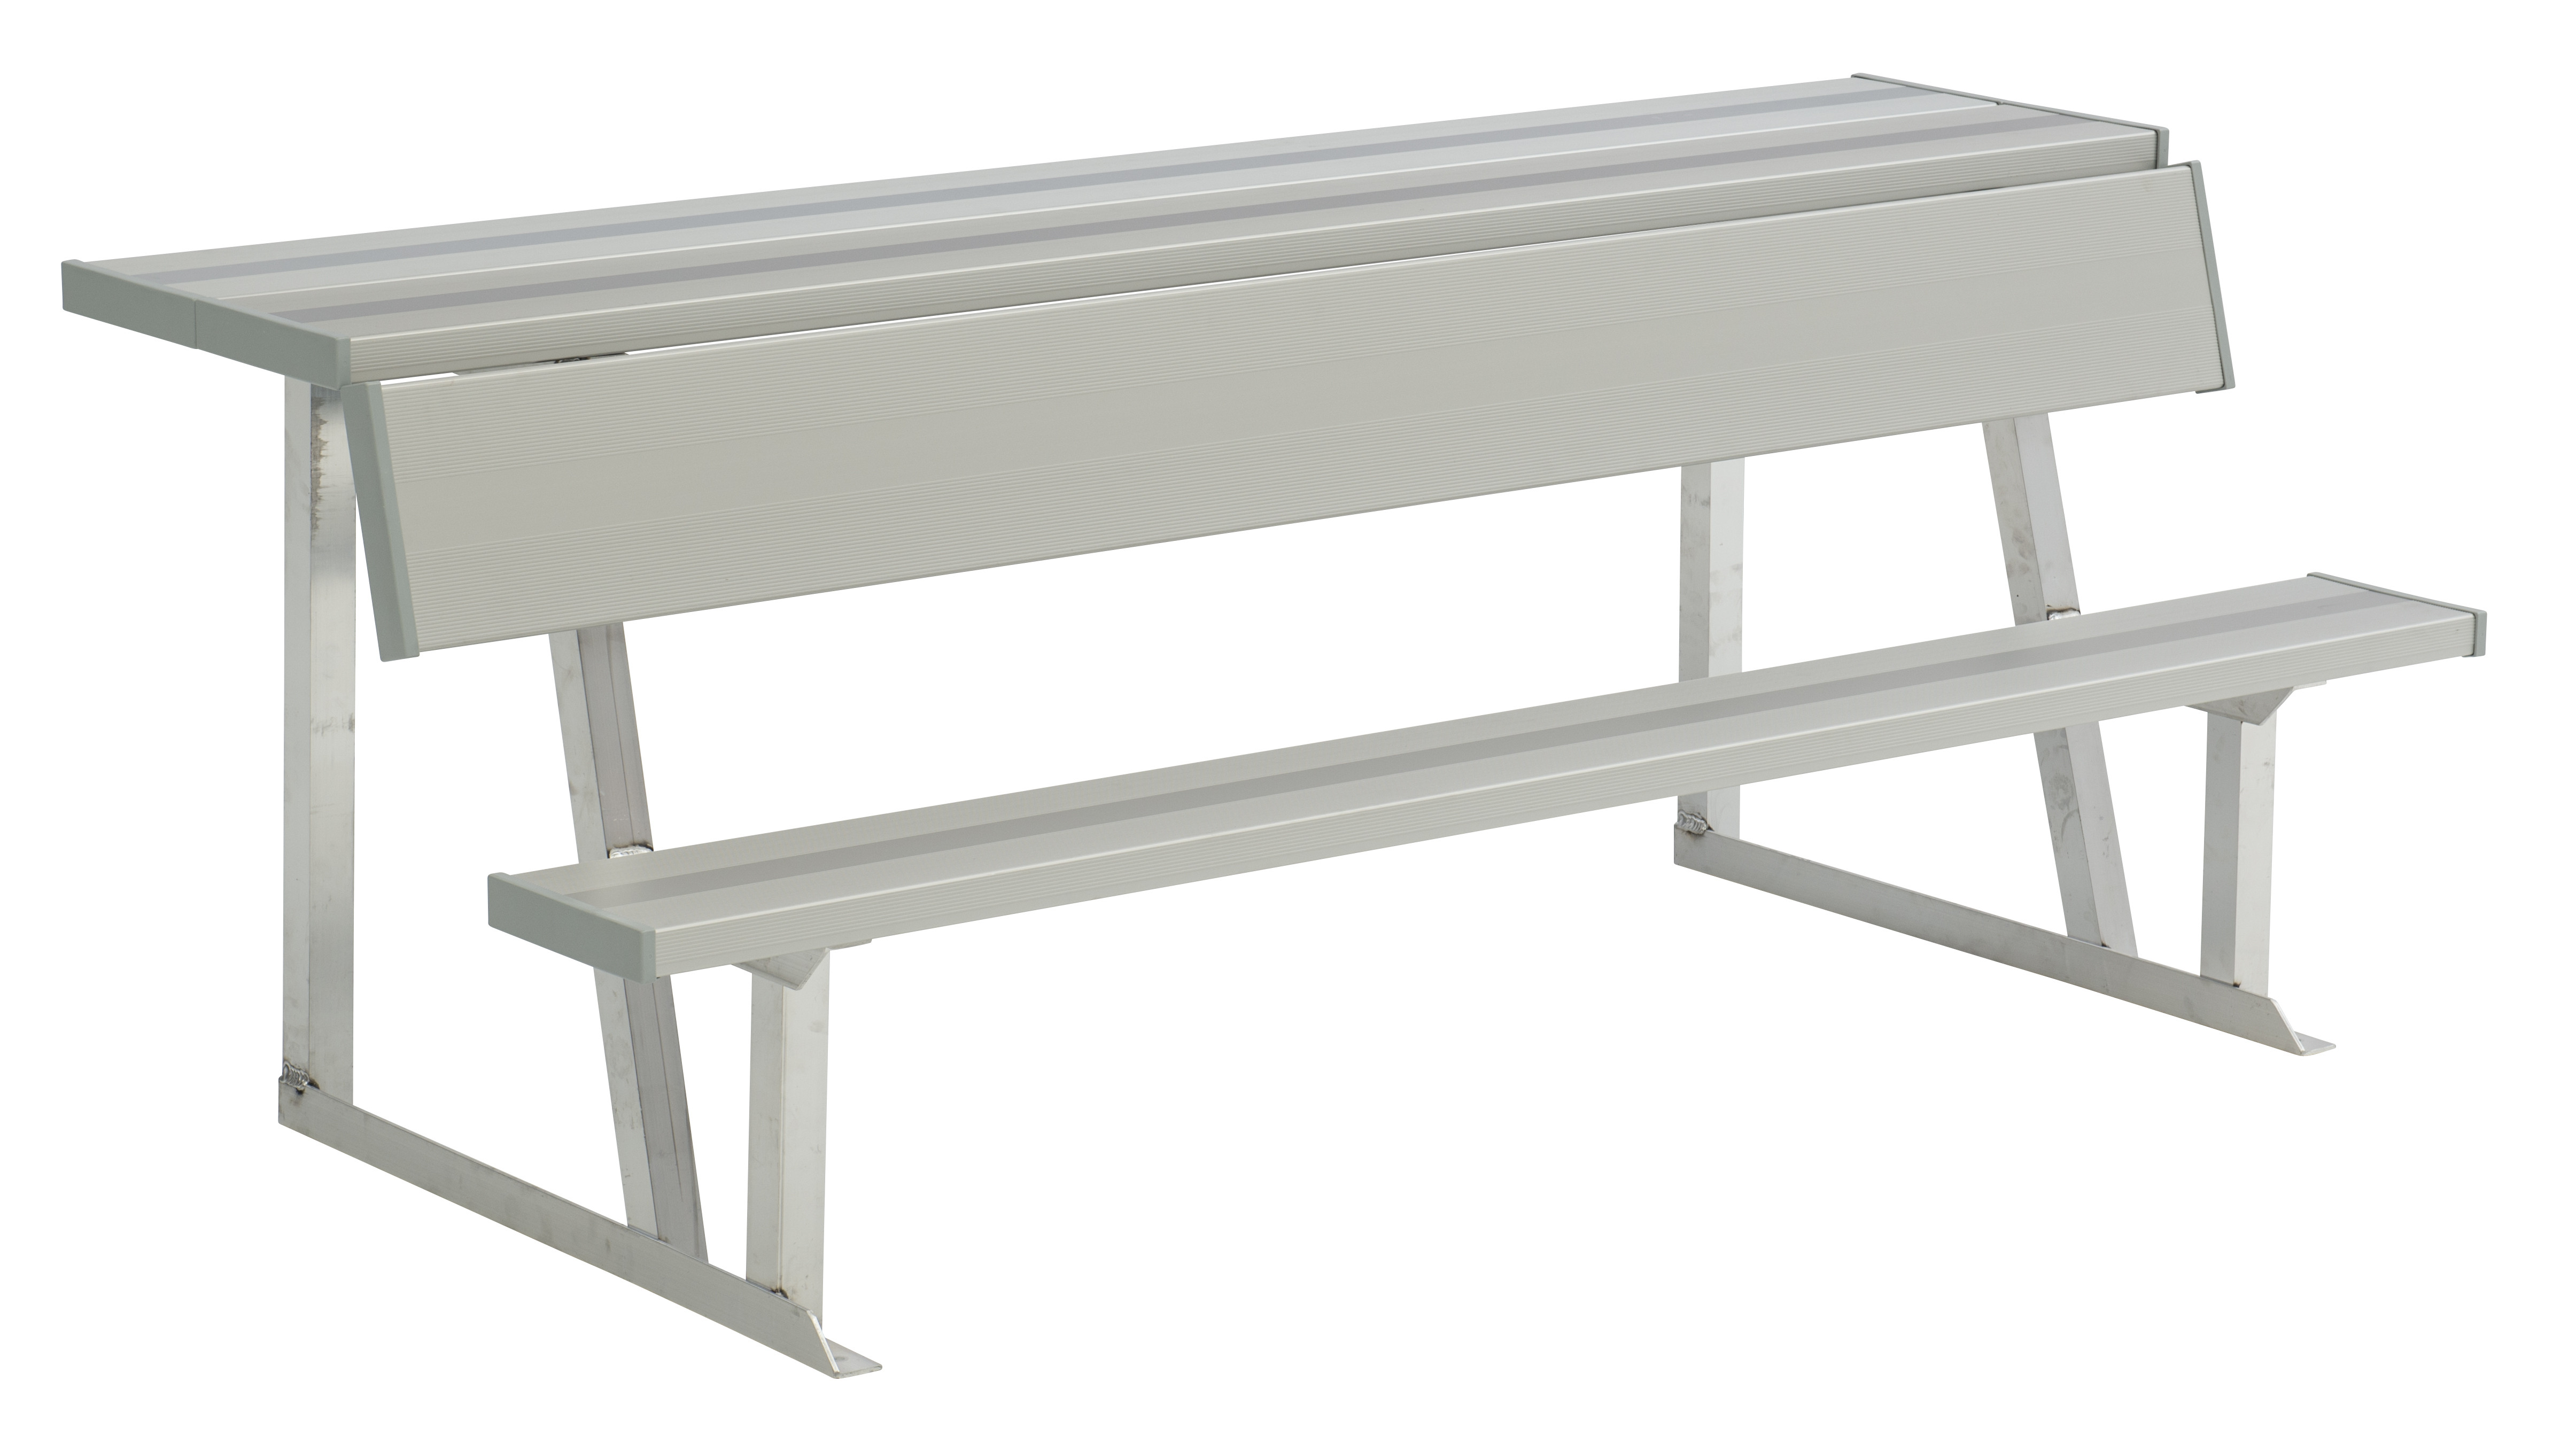 All-Aluminum Player's Bench with Back & Shelf